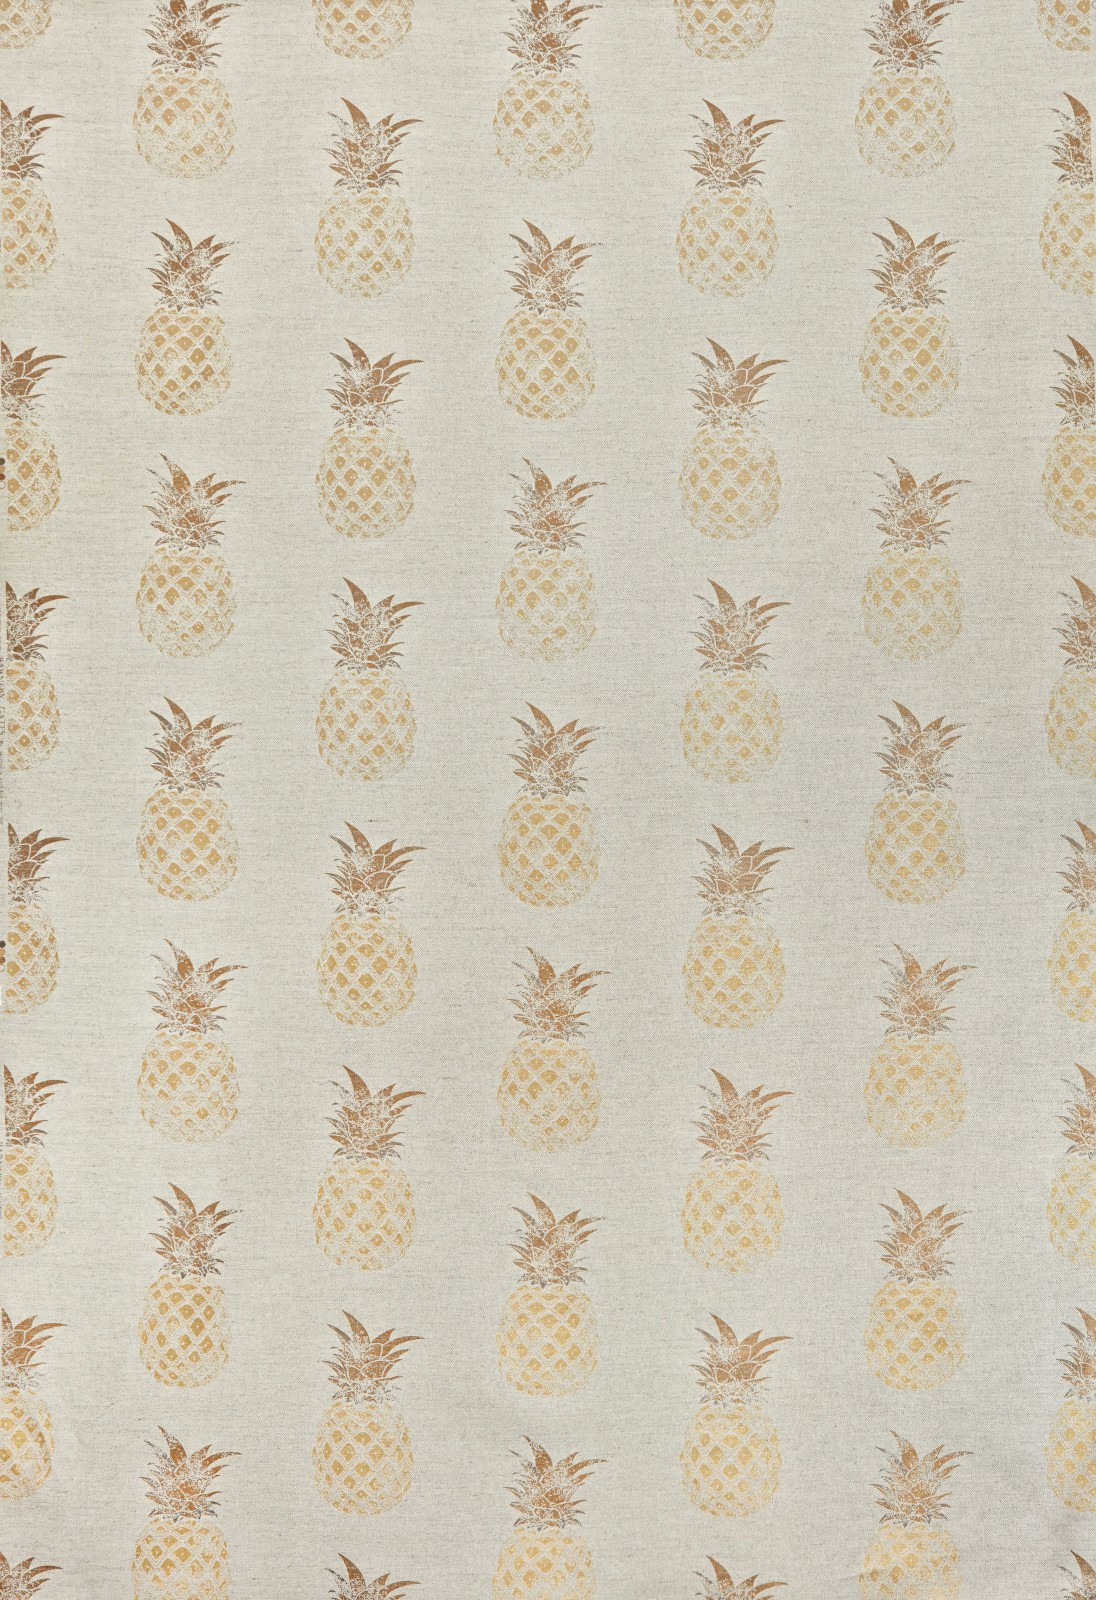 Pineapple Fabric Gold on Natural